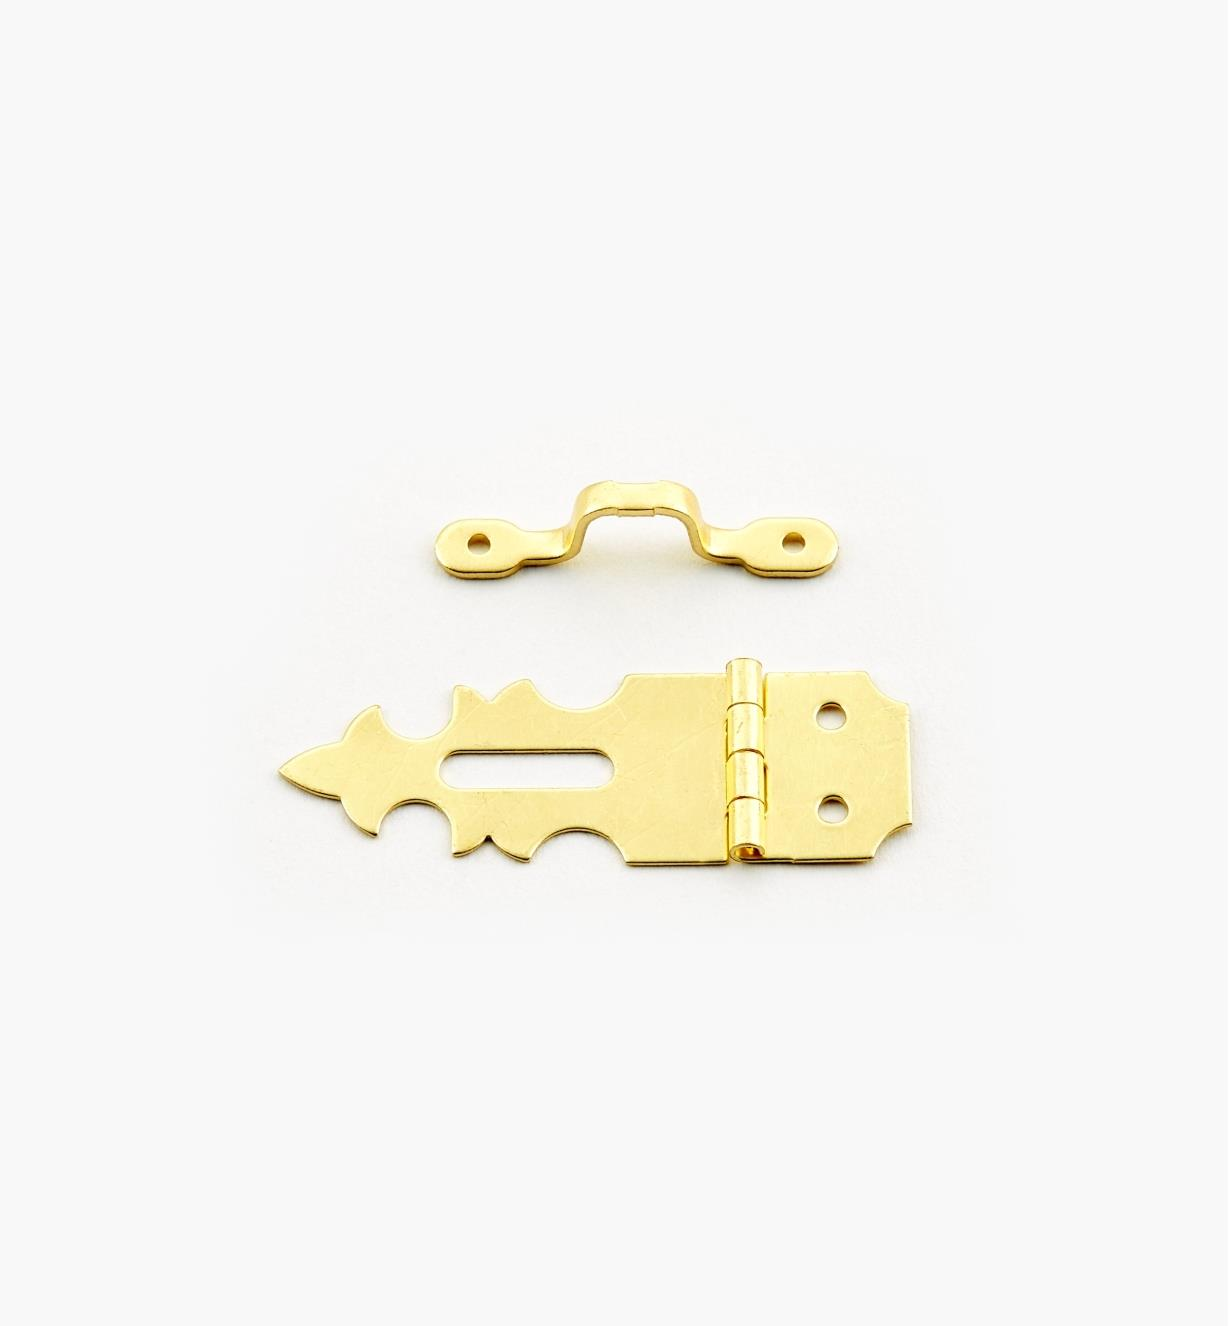 00D8055 - Narrow Single Hinge/Hasp & Staple, ea.